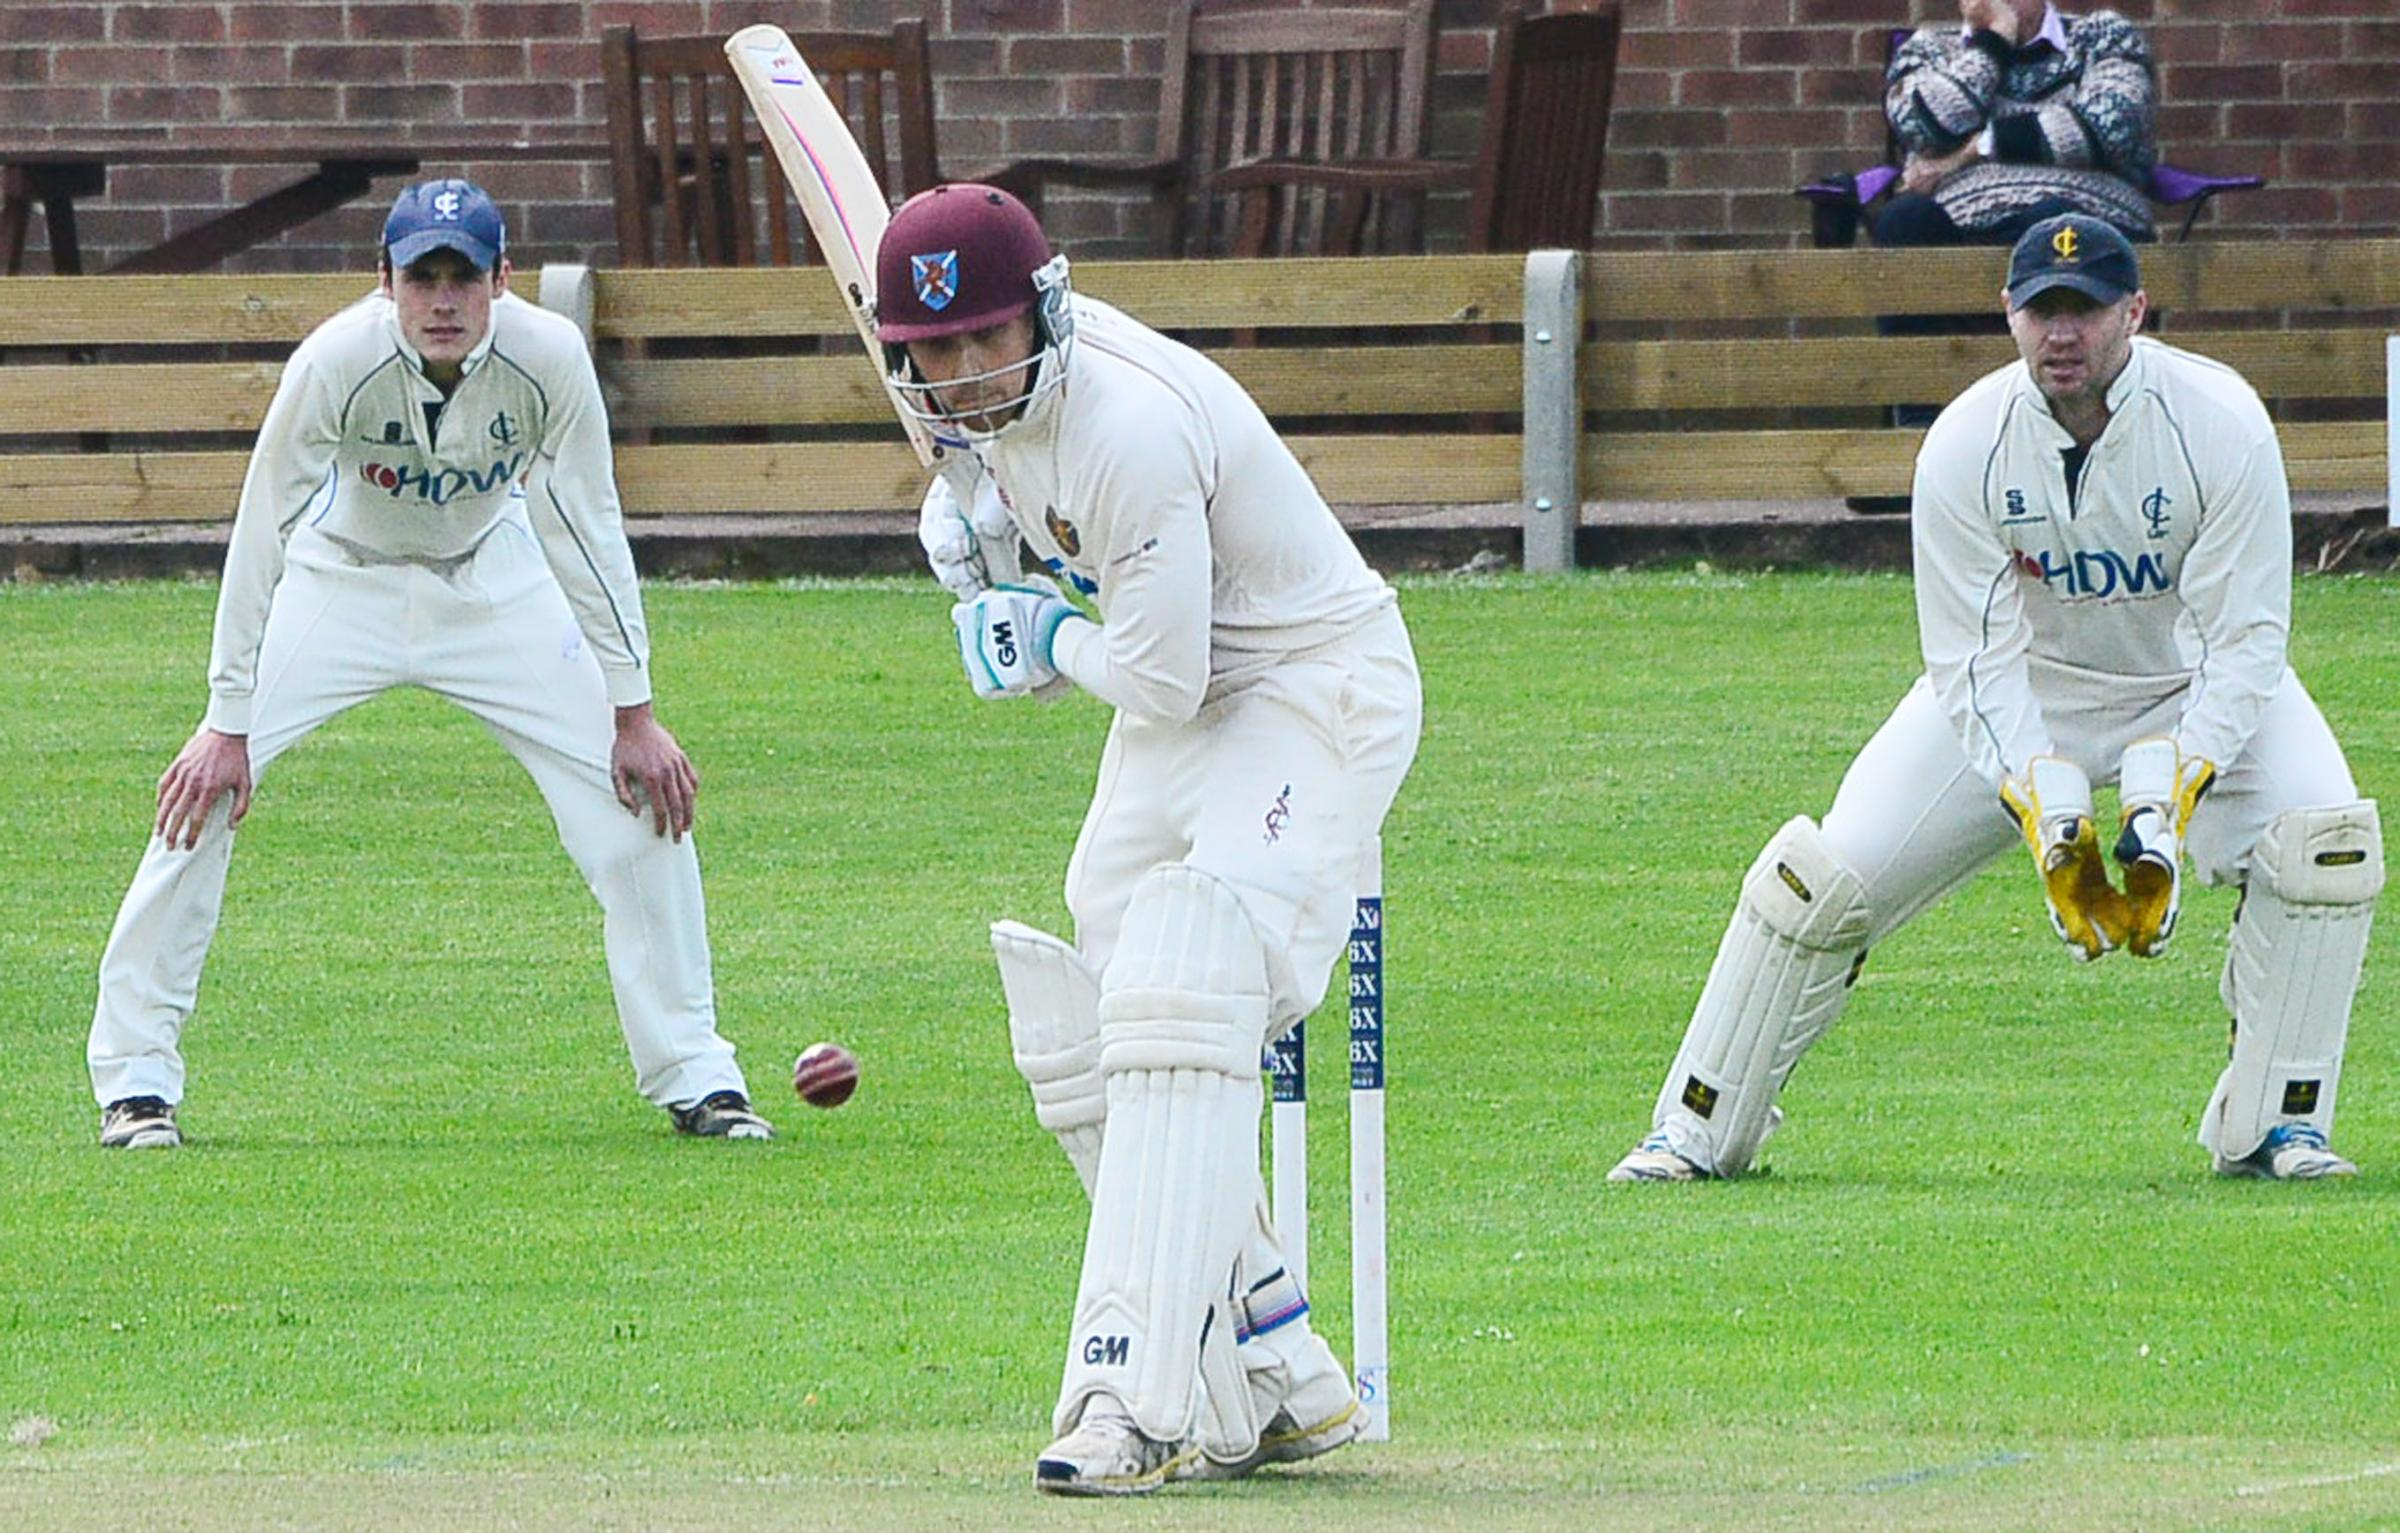 DEFEATED: Taunton St Andrew's, without captain James Regan (above), fell to defeat at Bishopston on Saturday.